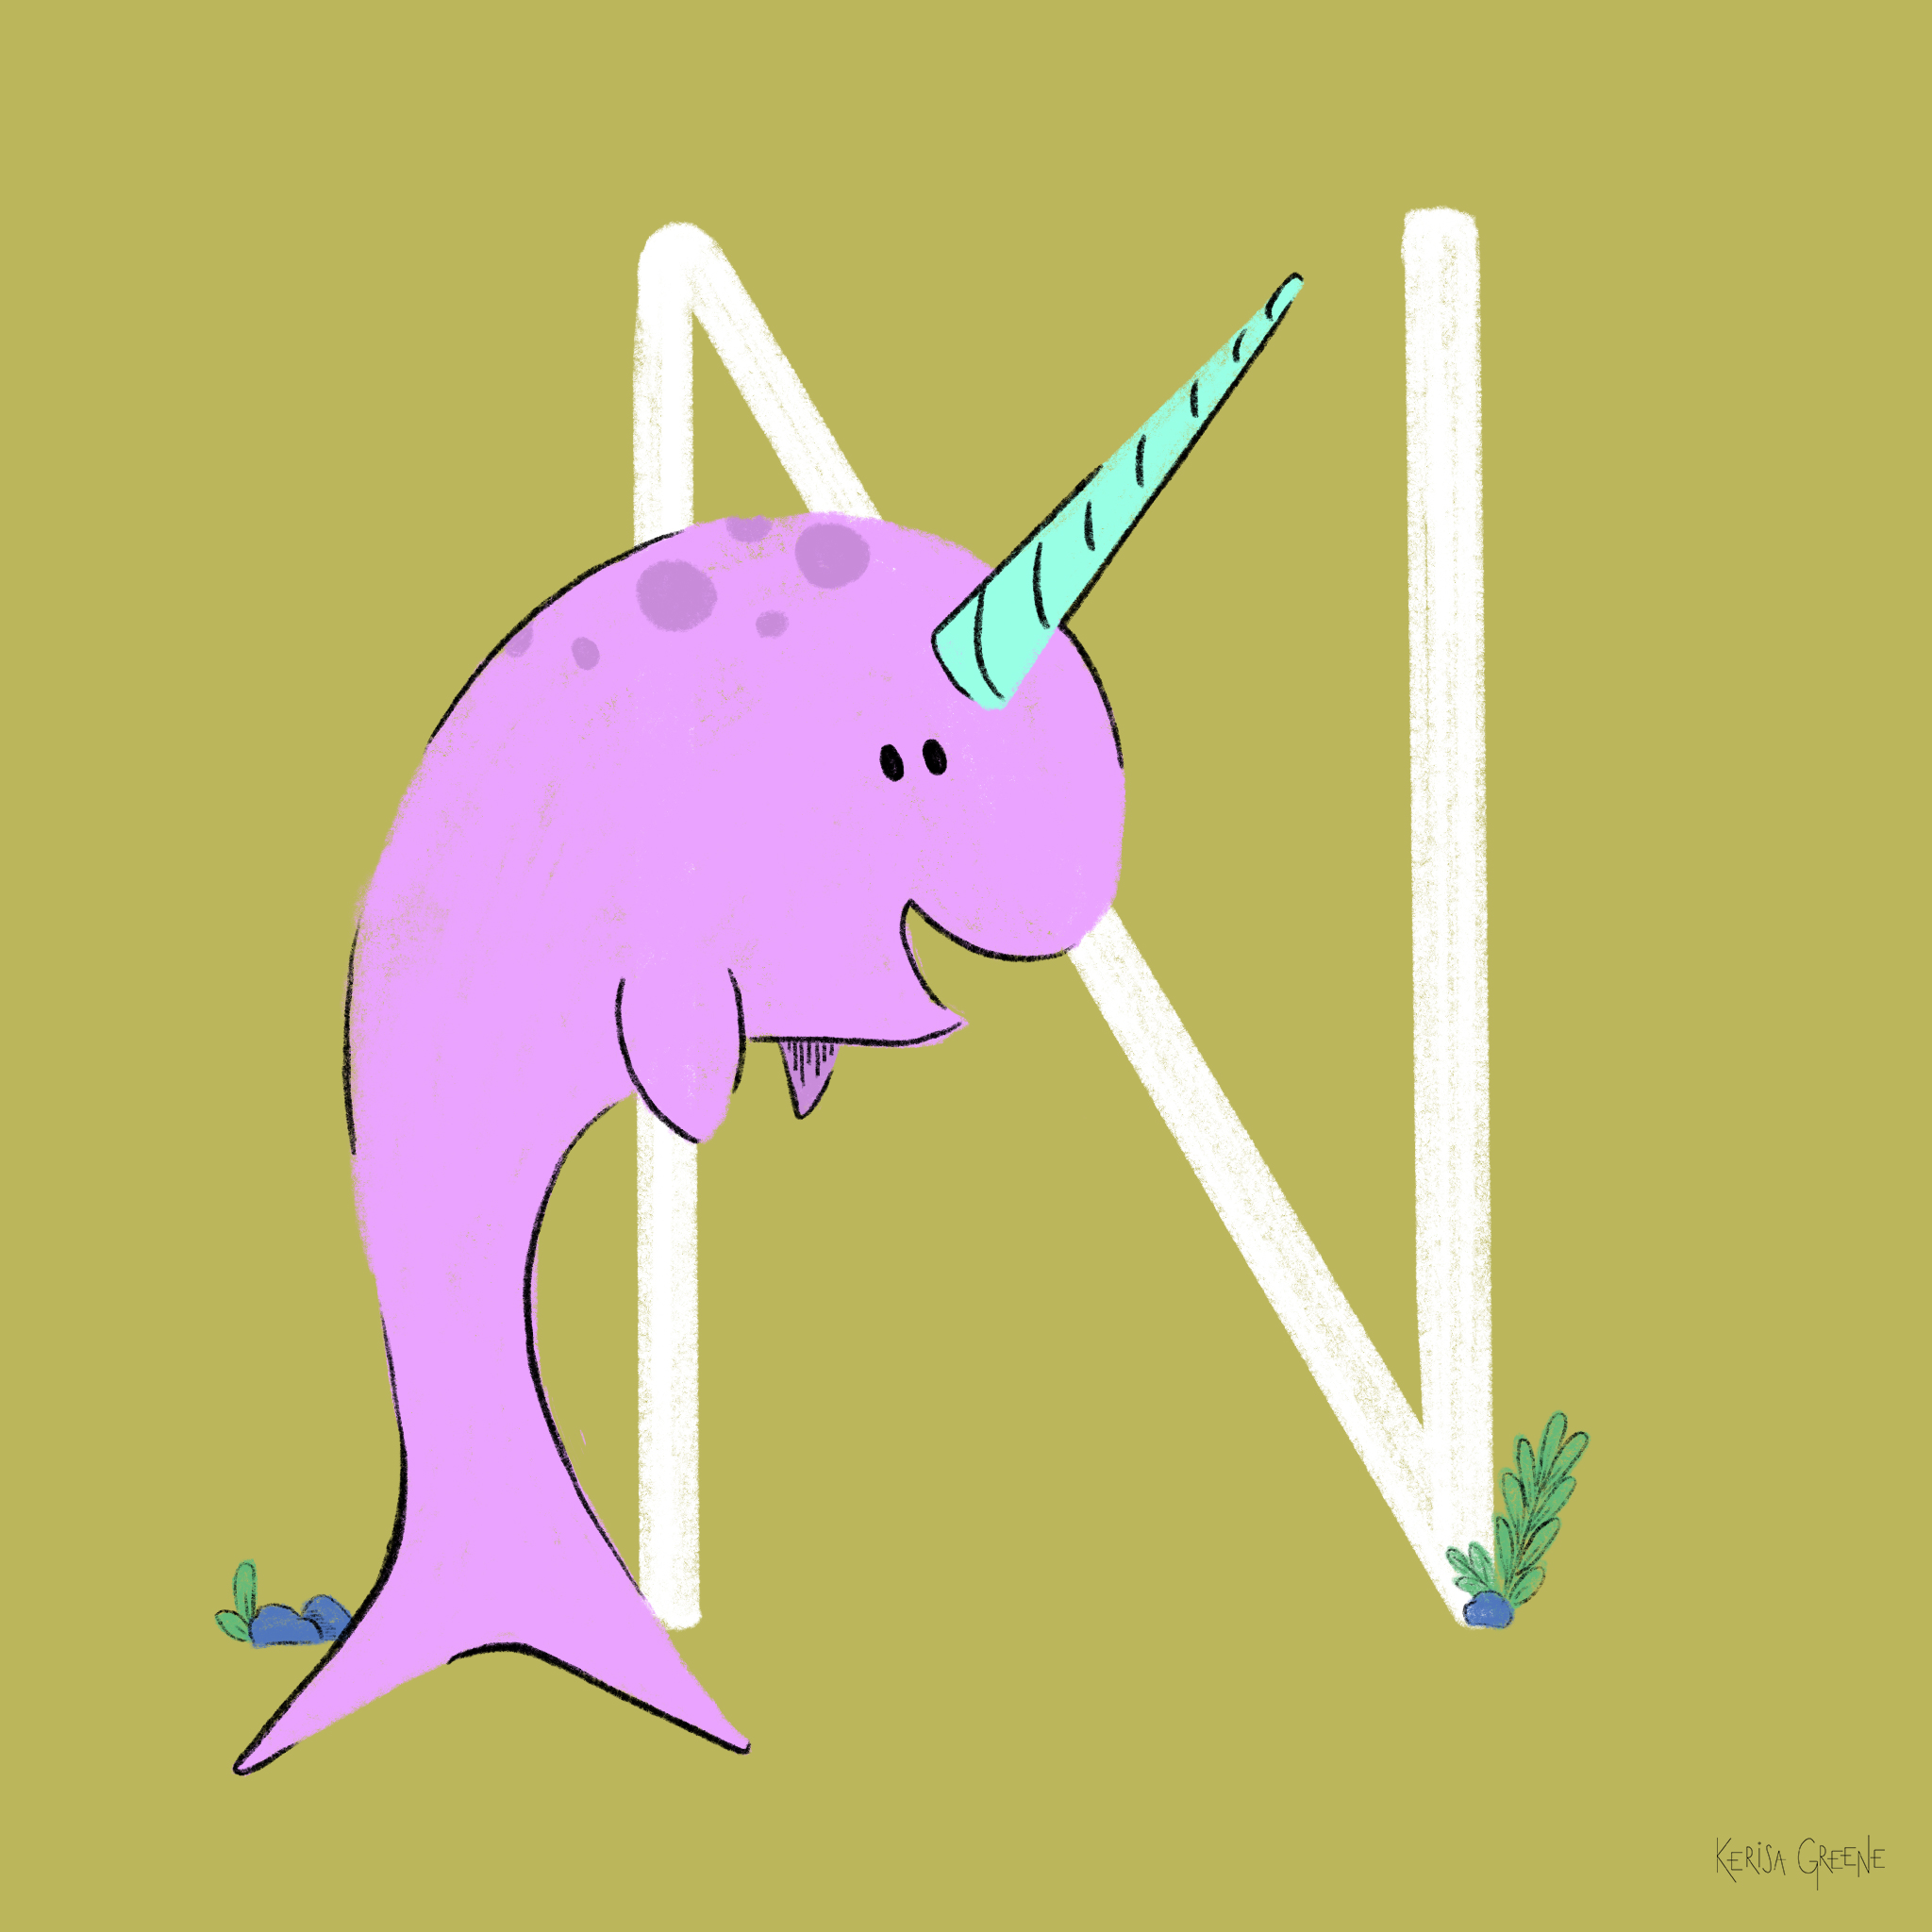 N is for Narwhal   This magical animal uses their tusk to detect changes in the water temperature or saltiness.⠀